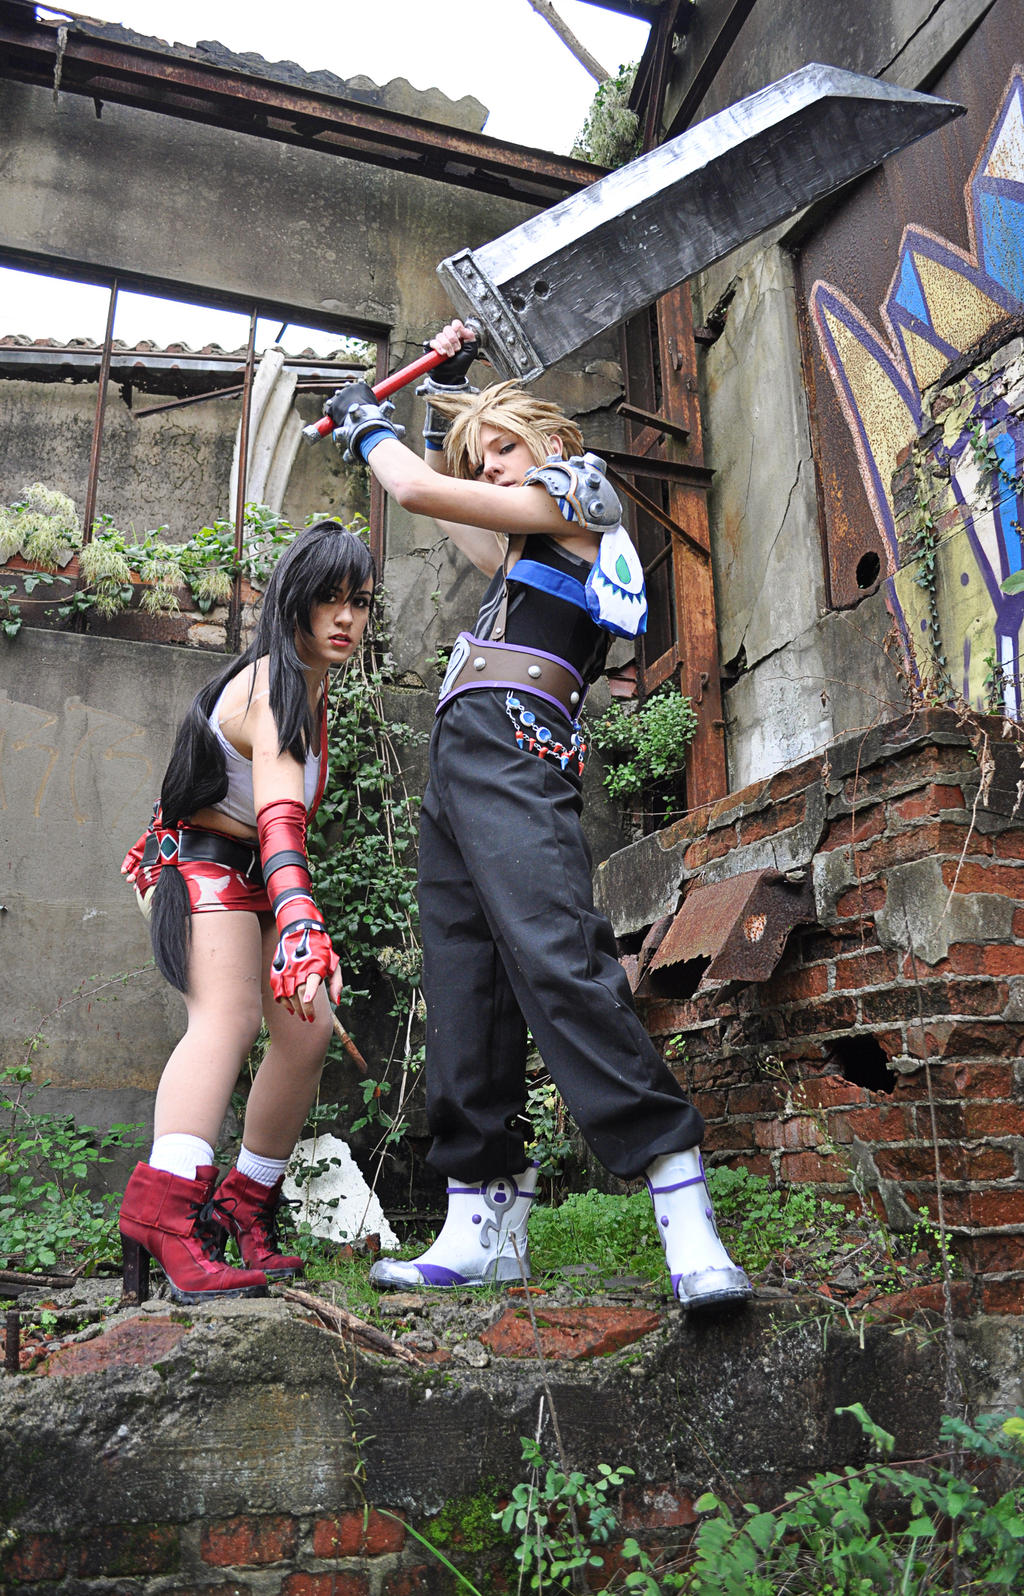 Cloud and Tifa Dissidia 012 by The-Final-Distance